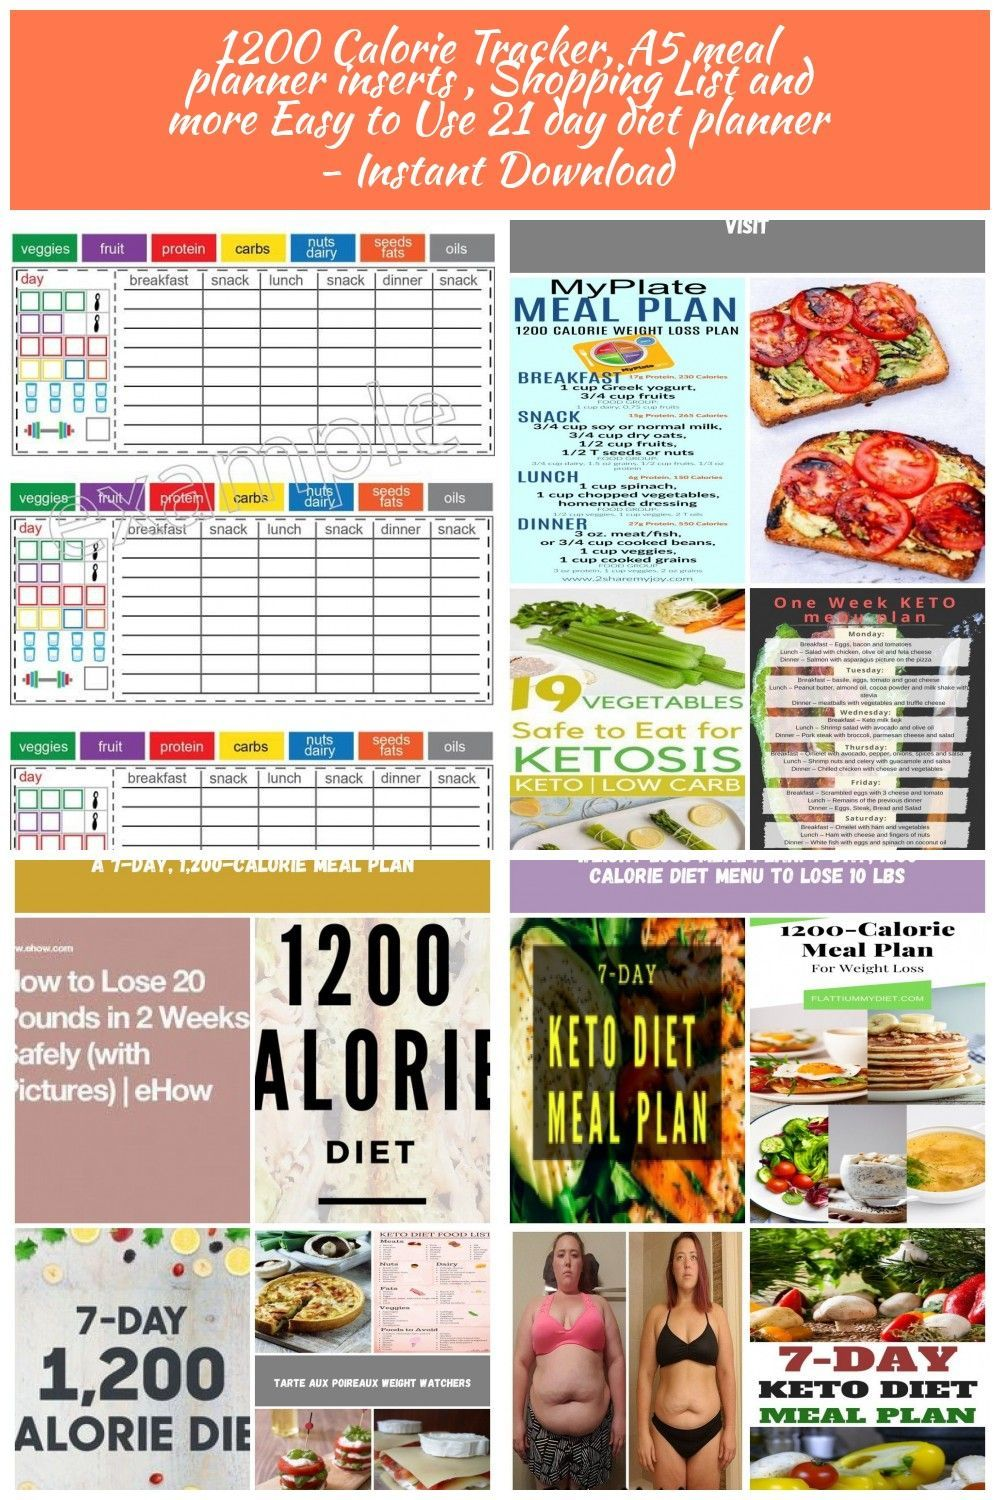 #calorie #calories #Day #diet #etsy #Fitness #Meal #planner #tracker 21 day fitness 1200 Calories Tr...